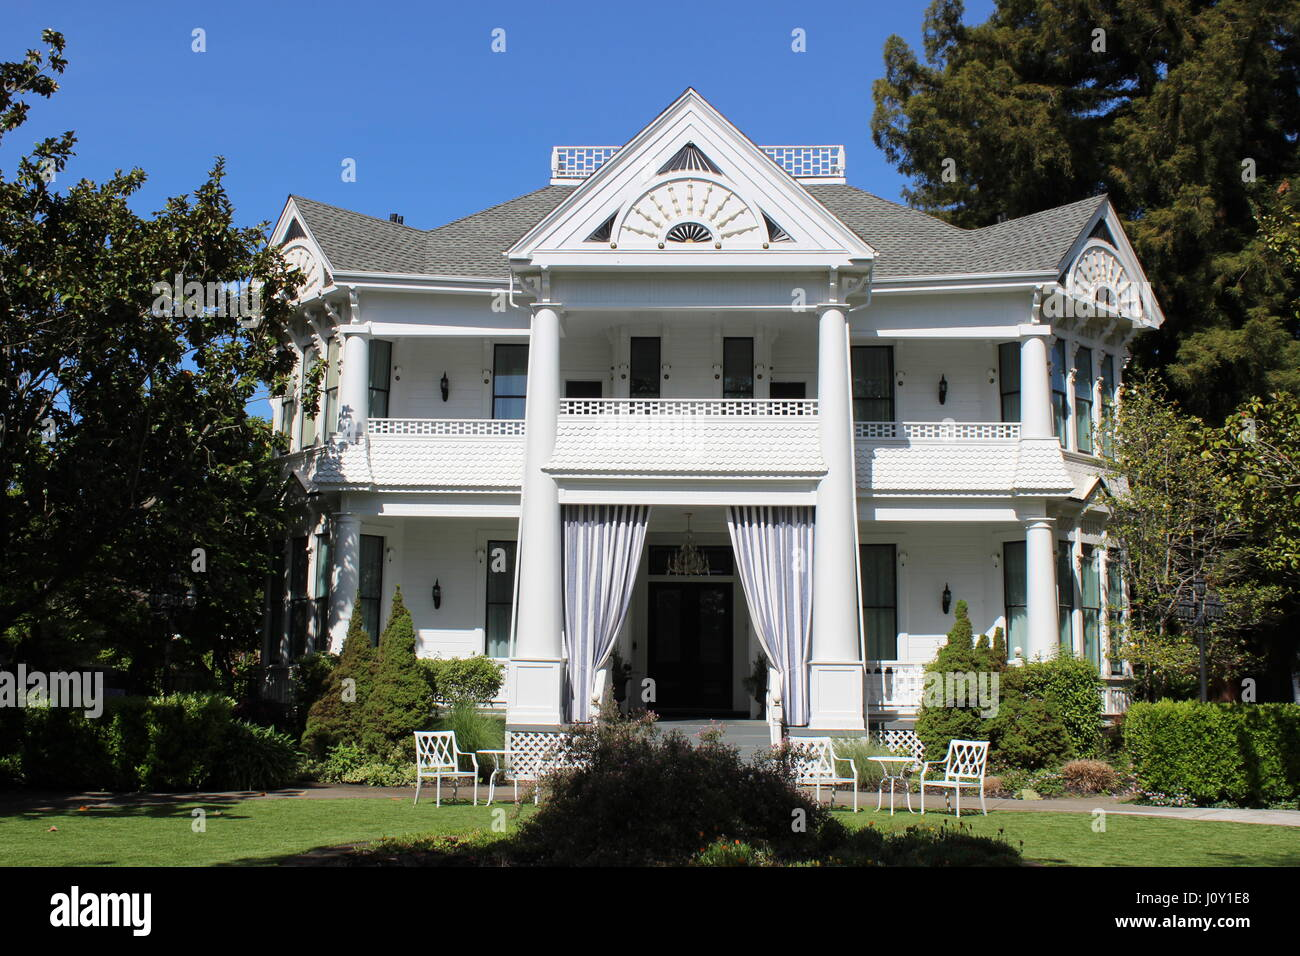 Manasse Mansion, Eastlake or Stick-style house built in 1886 in Napa California - Stock Image